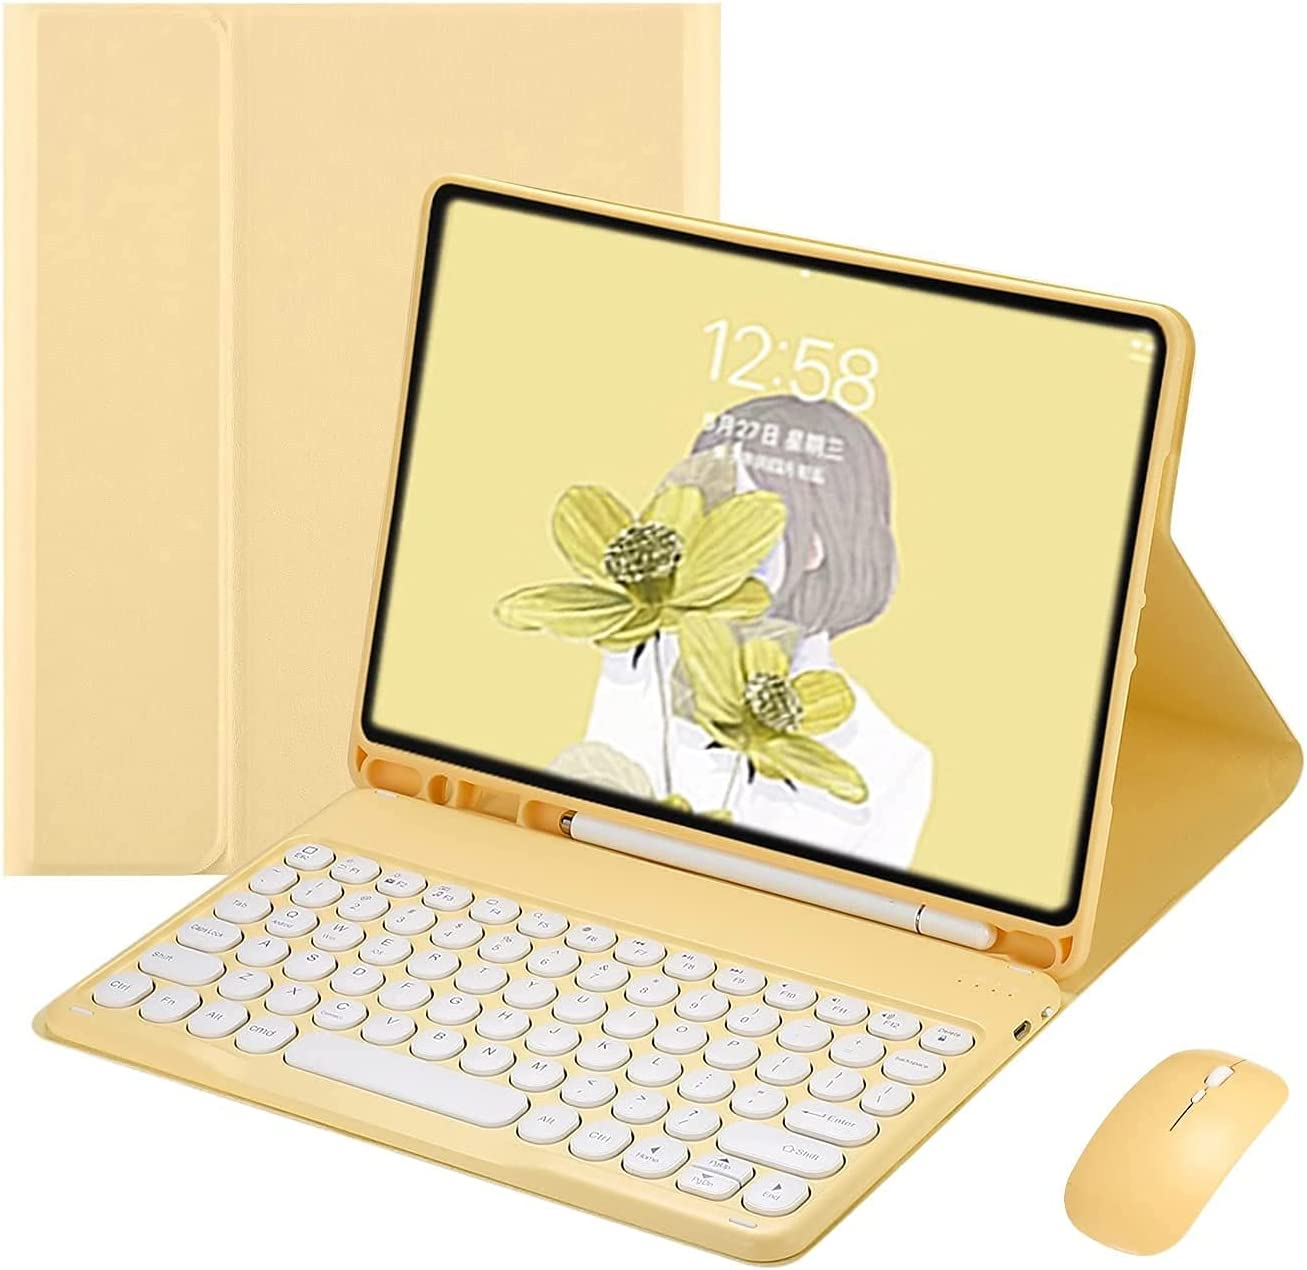 BlinkCat Round Keycap Keyboard Case for iPad 9.7 6th Gen 2018 / 5th Gen 2017, iPad Pro 9.7, Air 2 & 1, Magnetic PU Folio Stand Cover Detachable Wireless Bluetooth Keyboard + Mouse Candy Color - Yellow